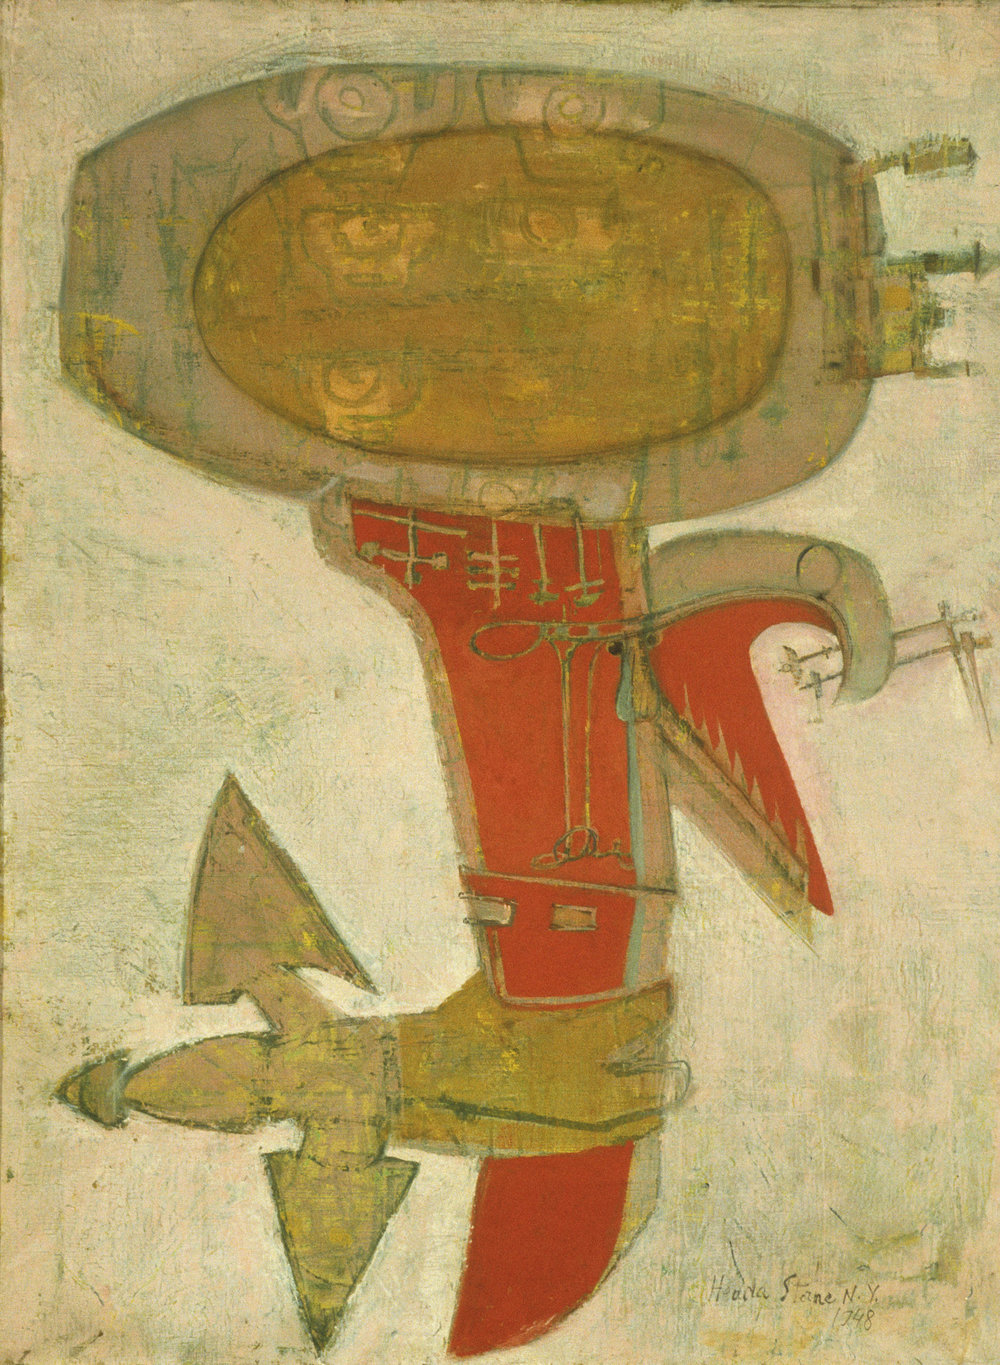 Hedda Sterne, Outboard Motor , 1948, Oil on canvas, 31 3/4 in. x 23 5/8 in., Collection of The Heckscher Museum of Art; Gift of the artist in memory of Betty Parsons, 1999.28